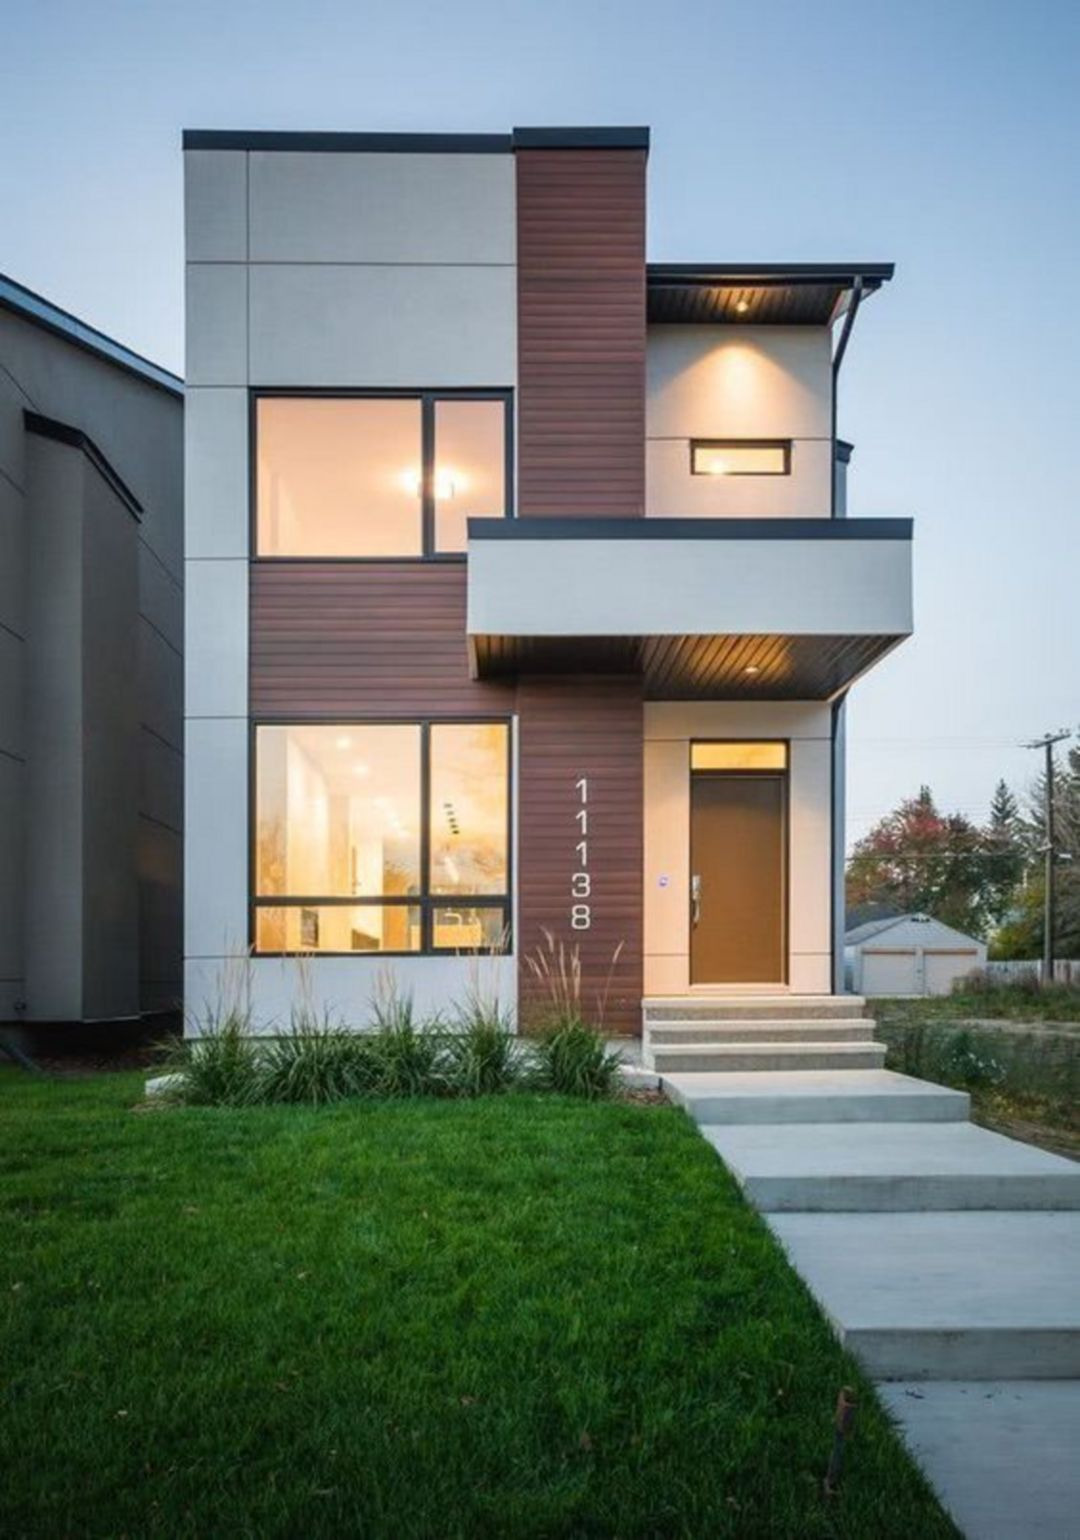 Facade Ideas Front Of House New 13 Modern Minimalist Tiny House Design Ideas for Your